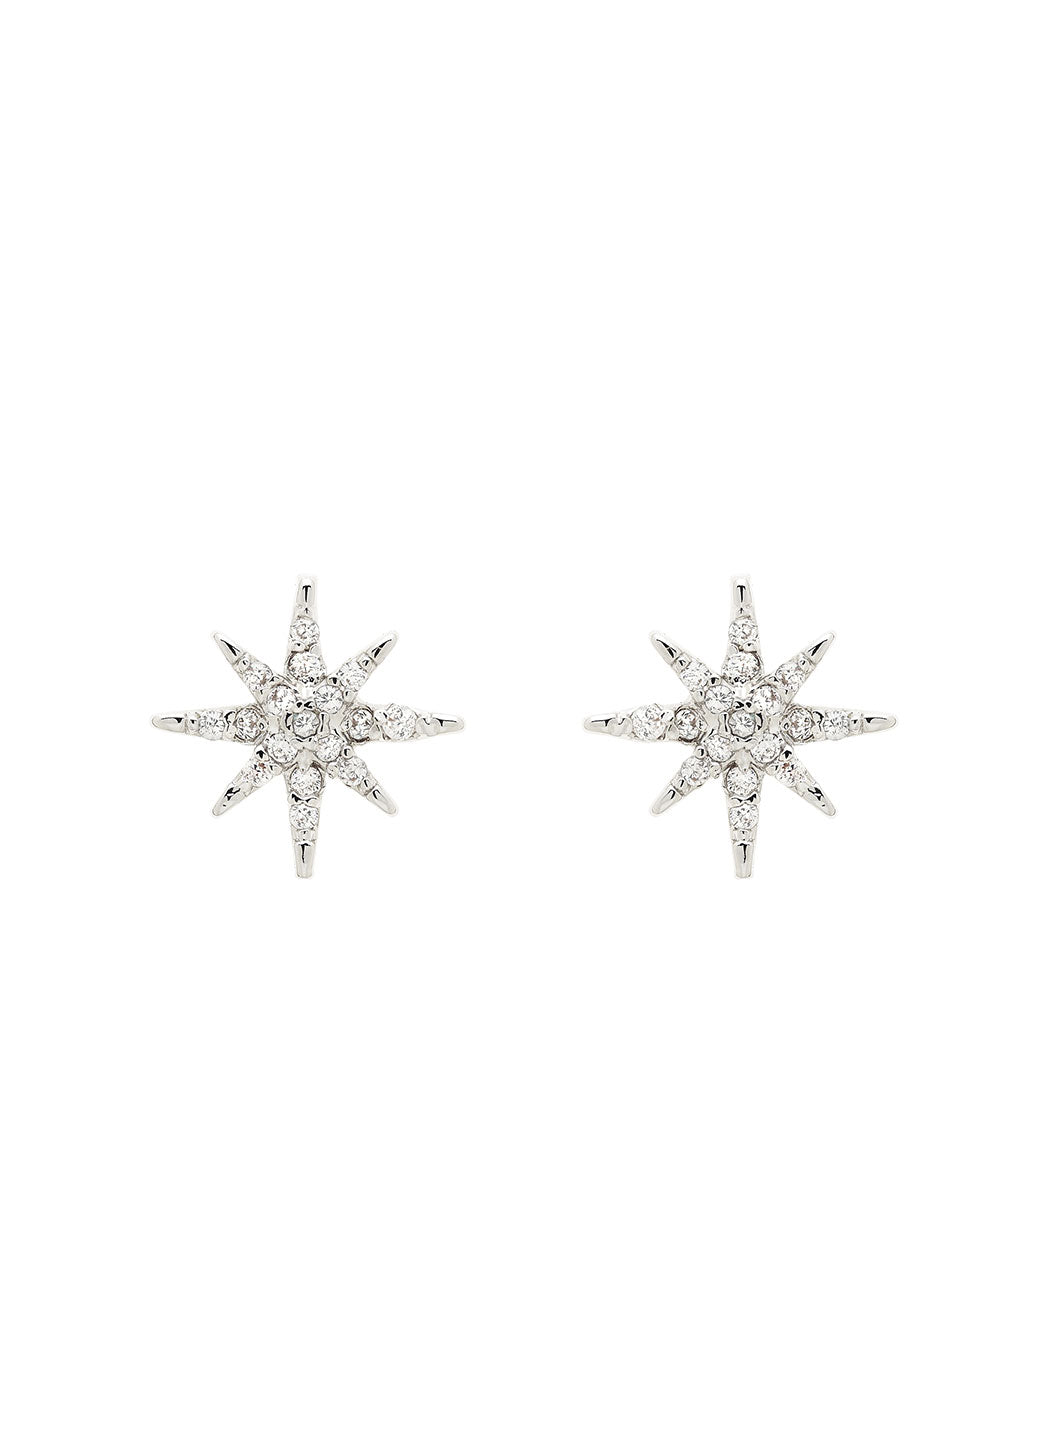 Silver Swarovski Star Earrings